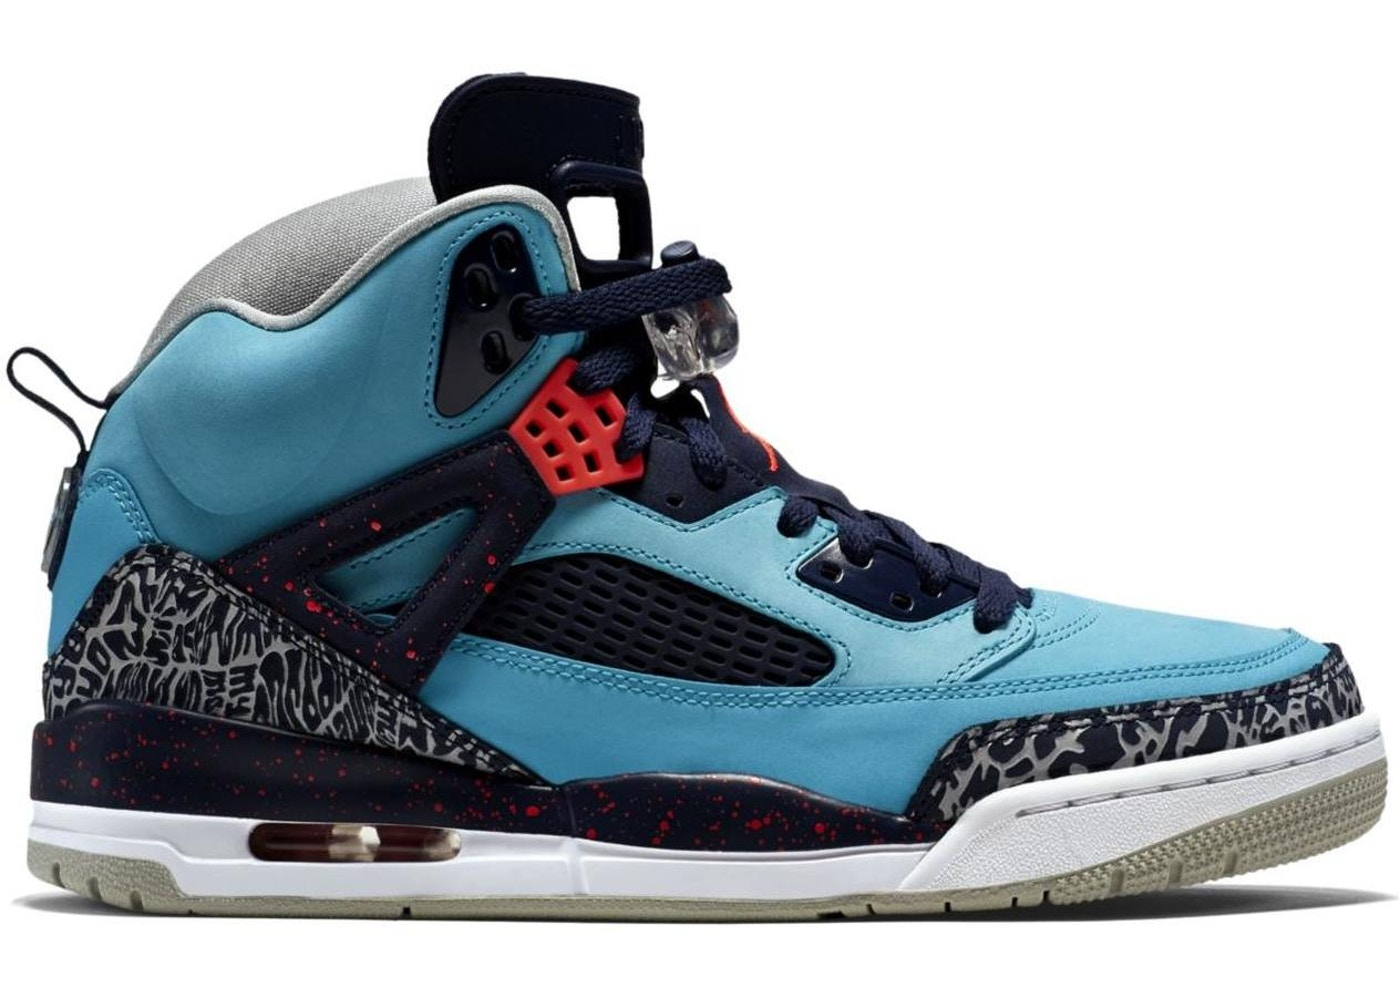 low priced e08a8 27b45 Jordan Spiz ike Turquoise Blue - 315371-408